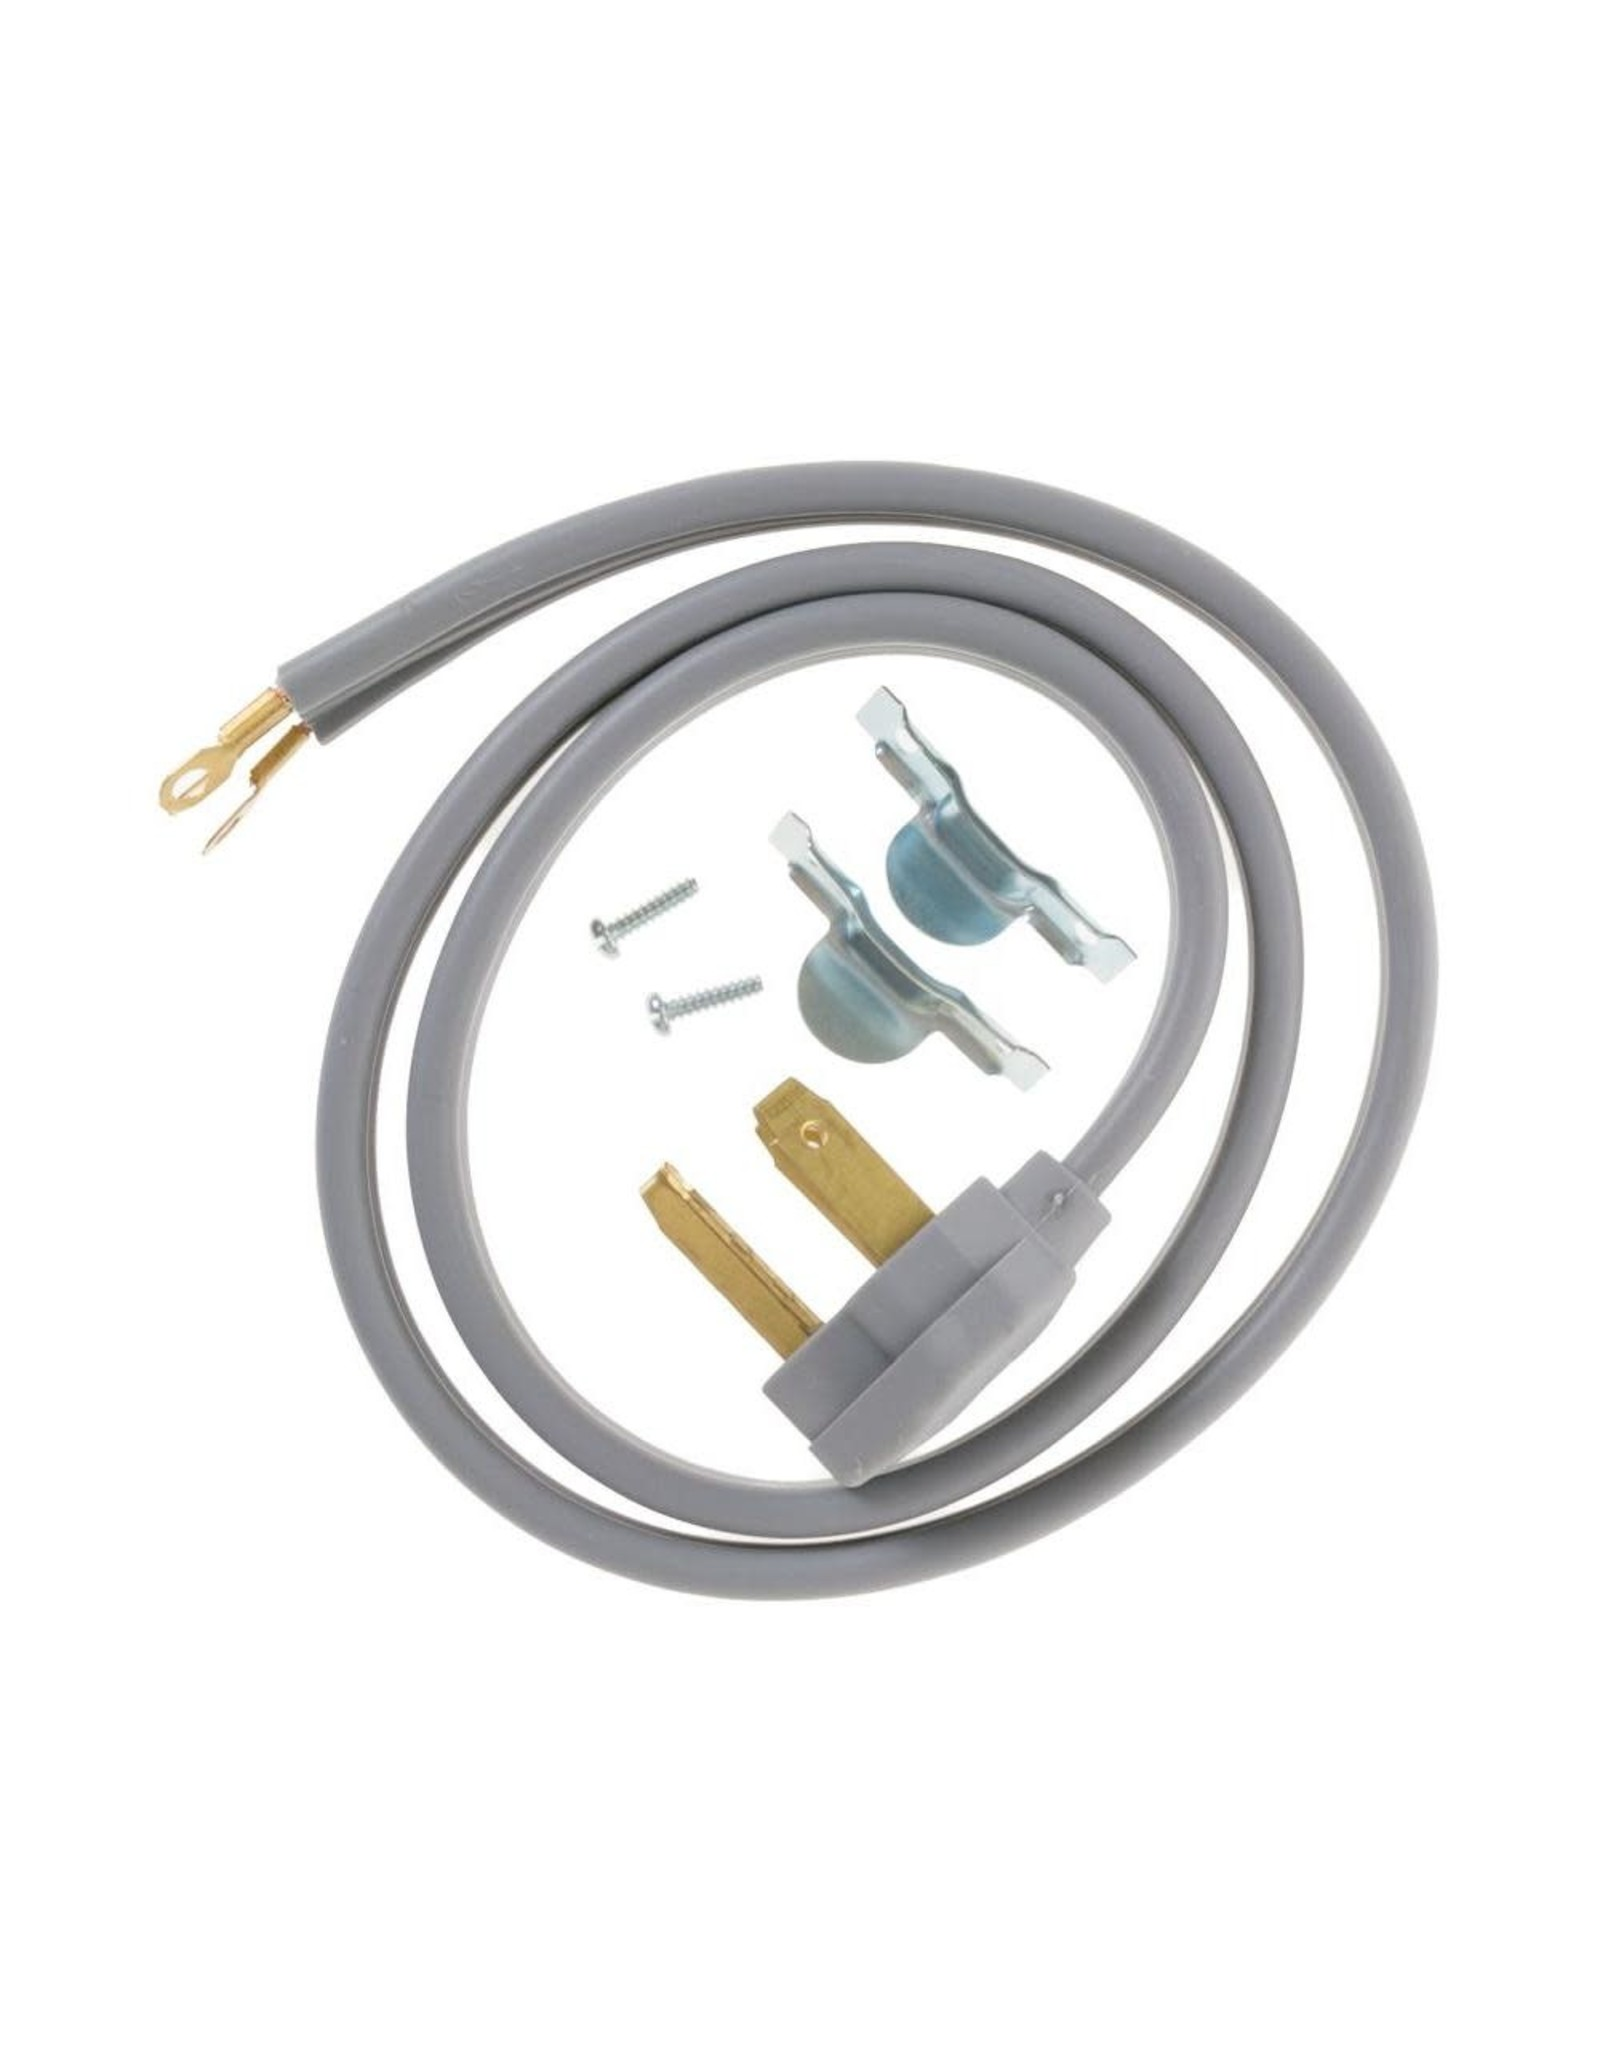 GE 4 ft. 3-Prong 30 Amp Dryer Cord